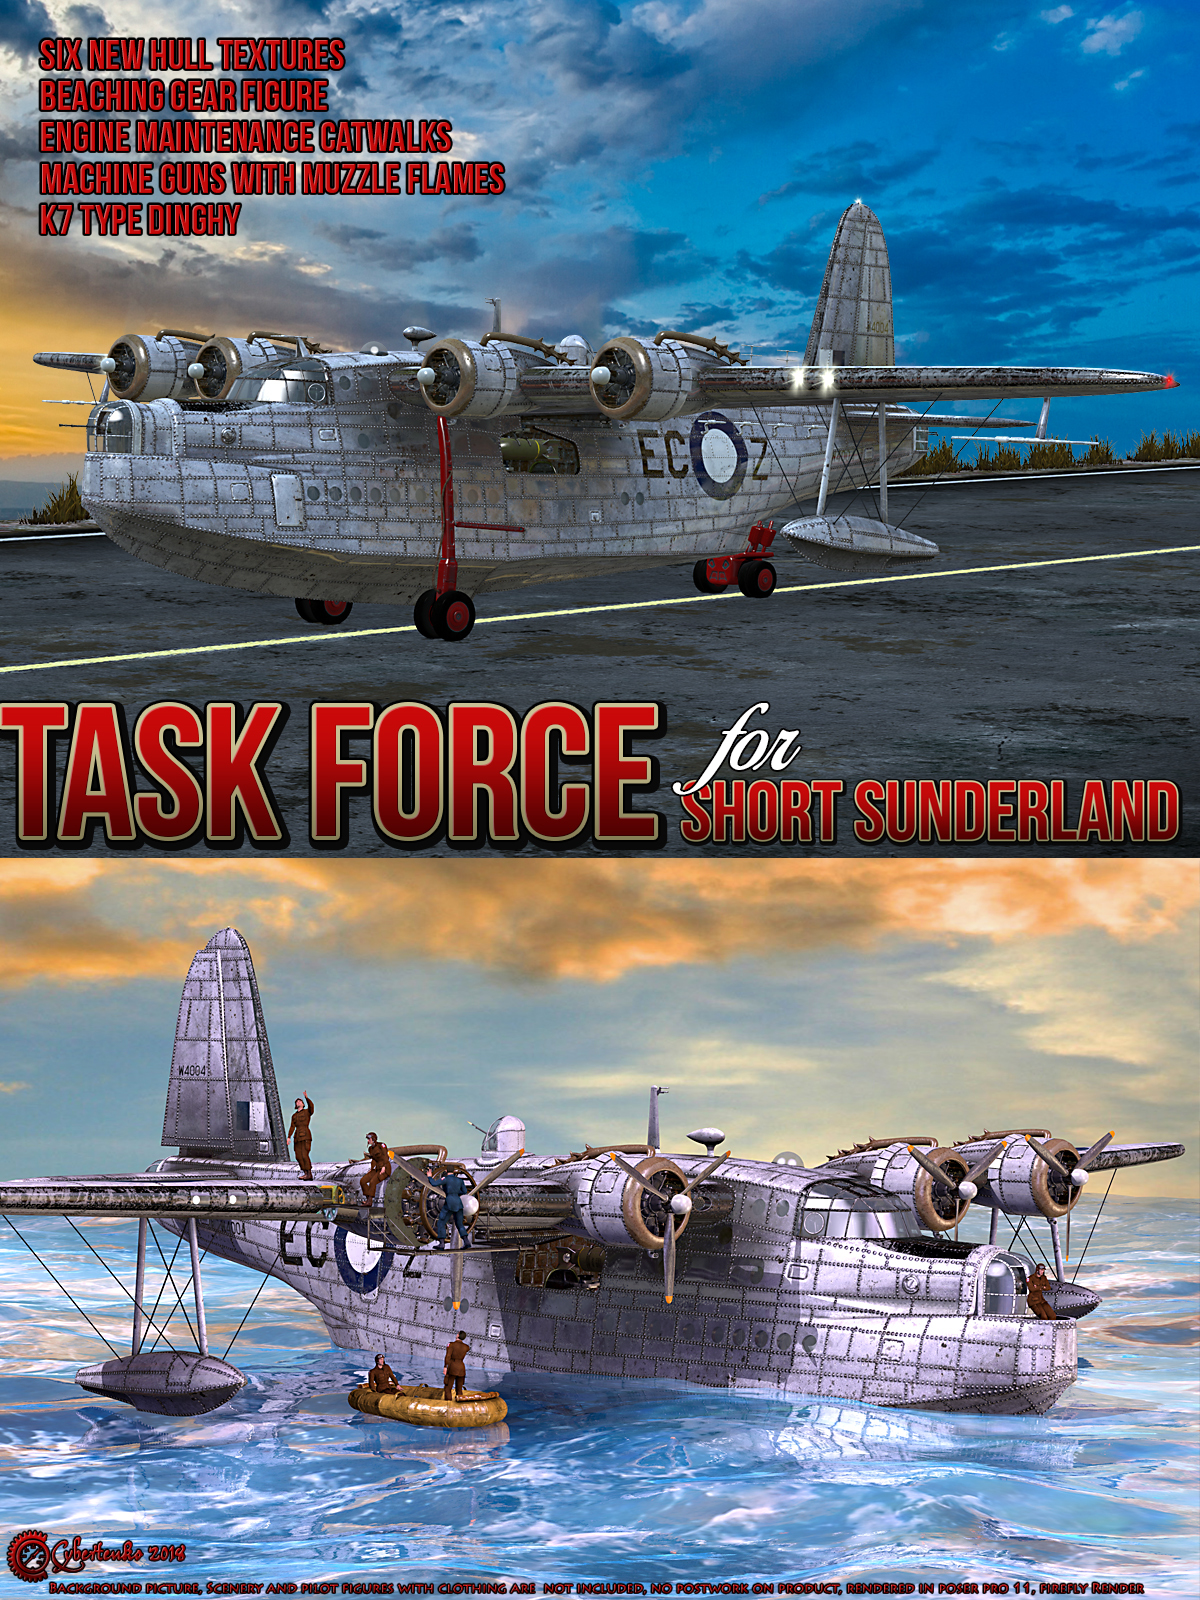 Task Force for Short Sunderland